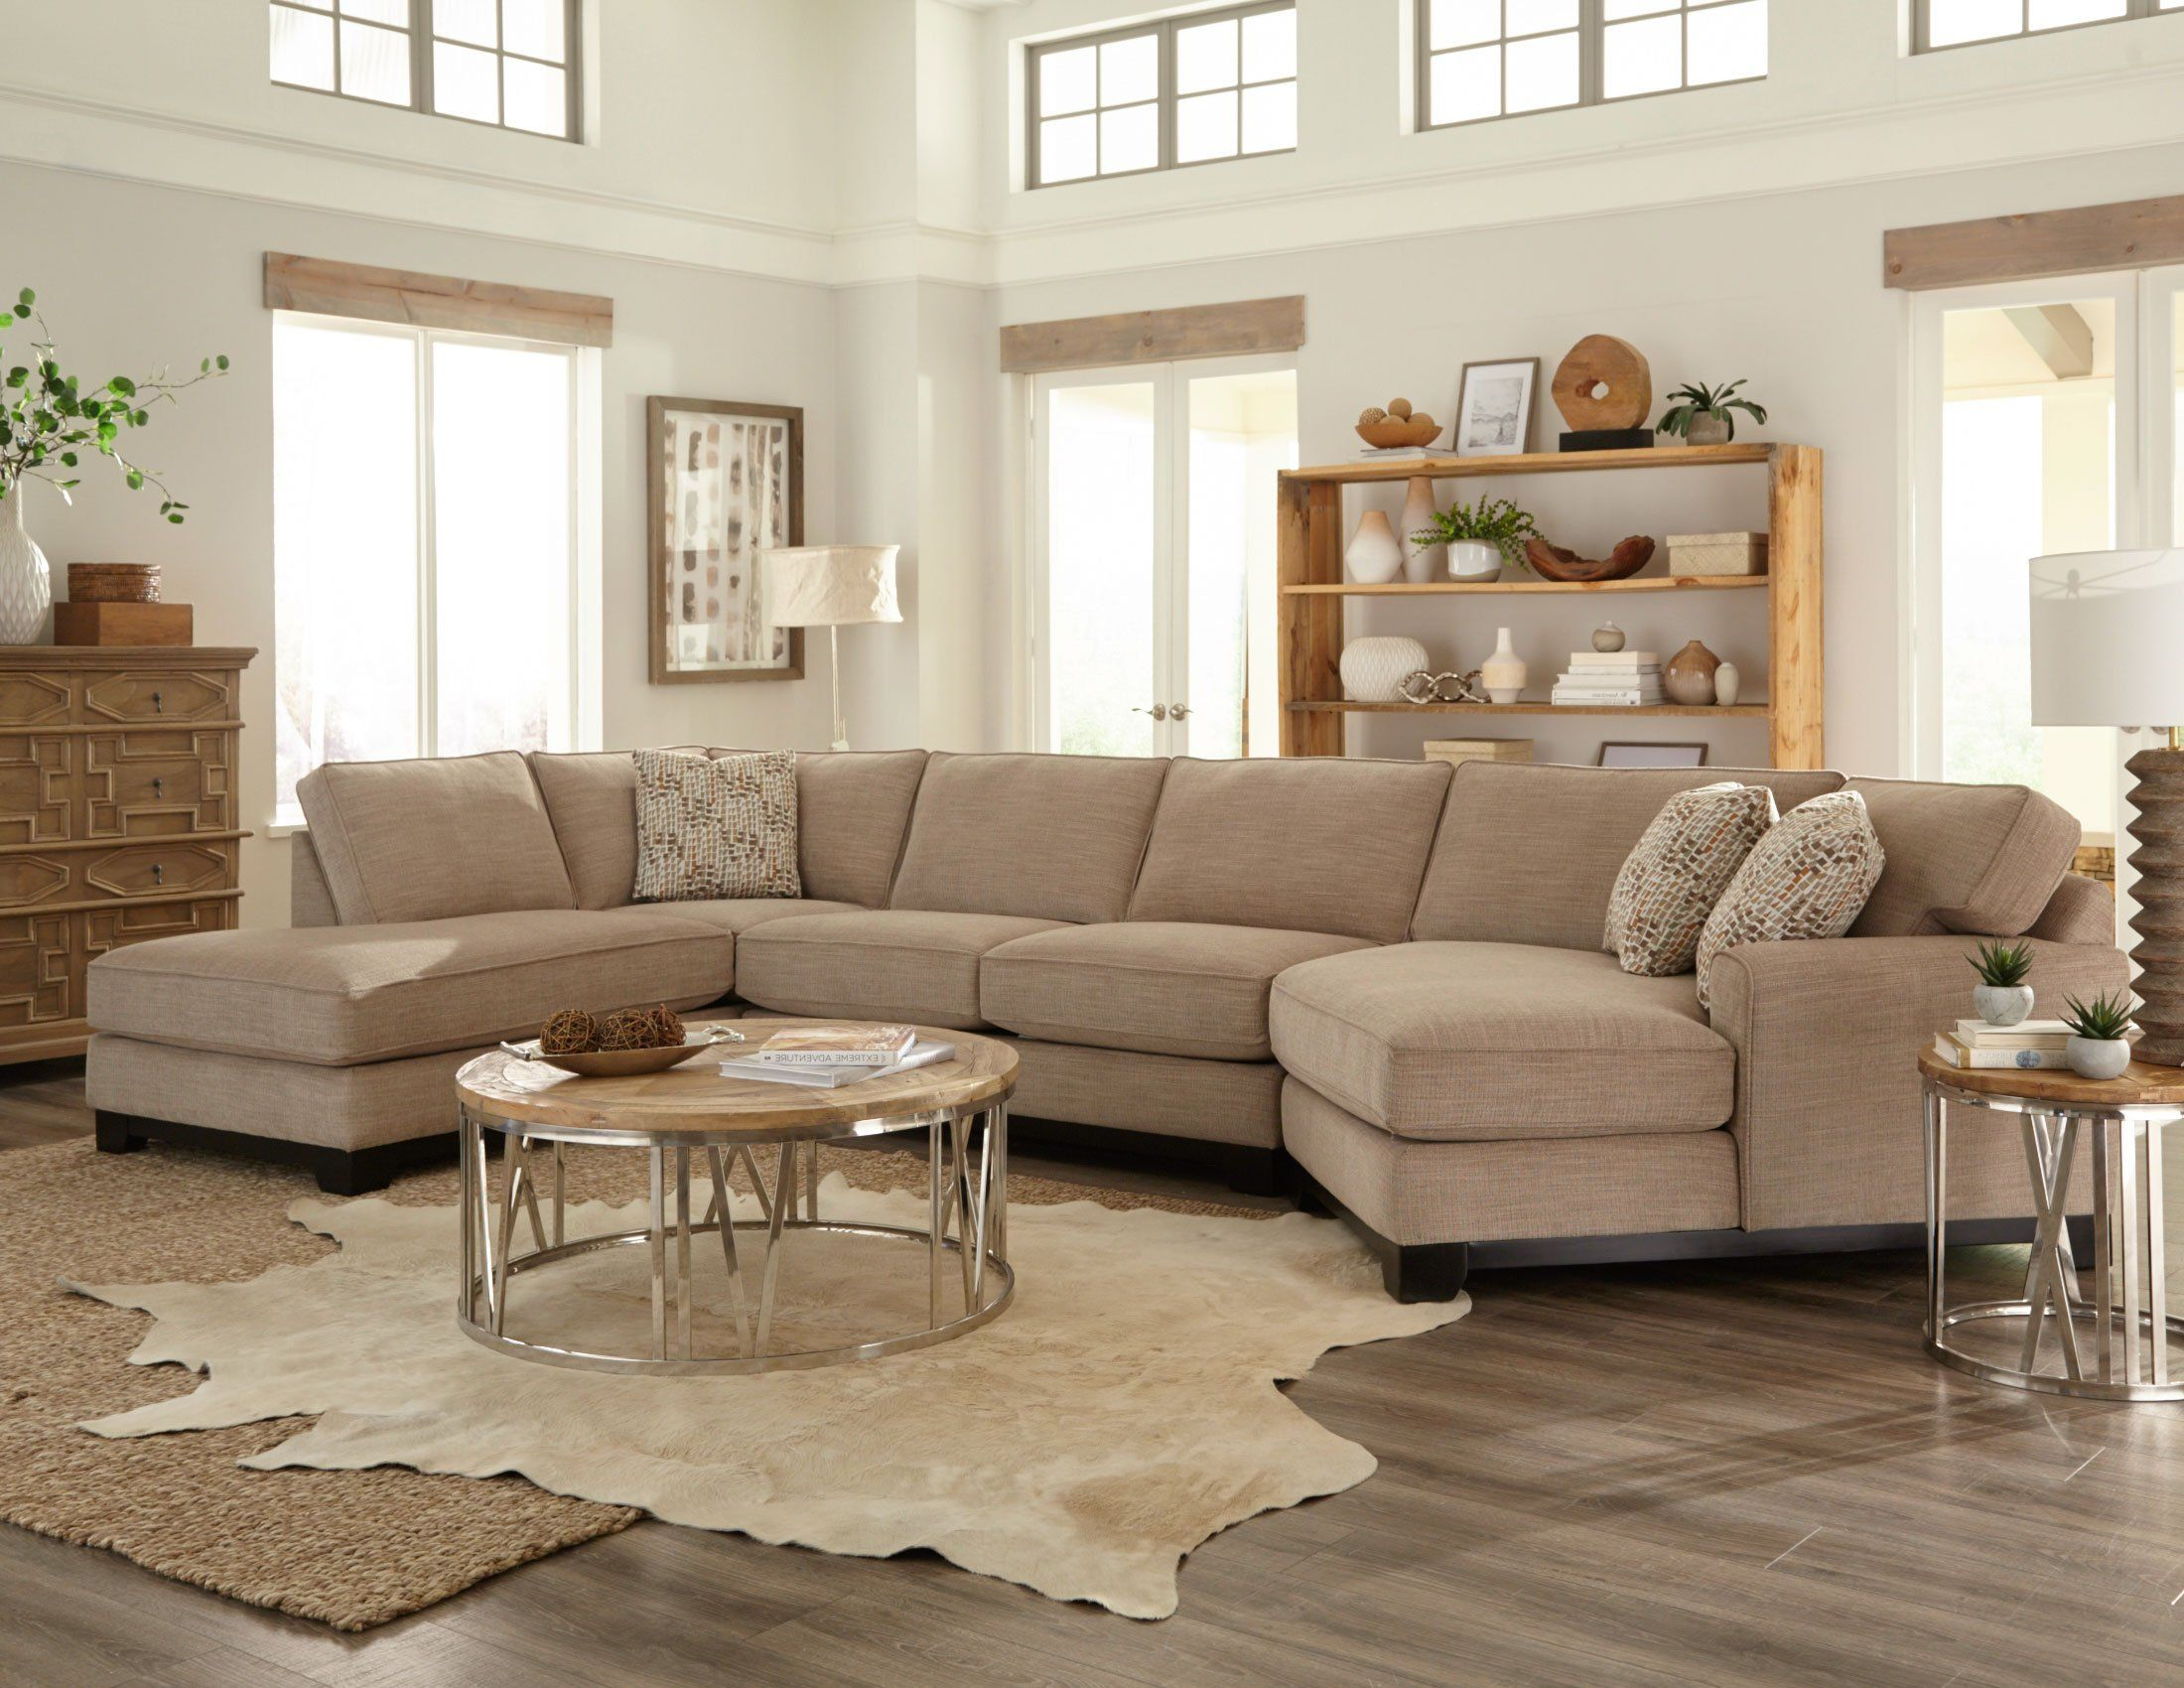 Beige 3 Piece Sectional Sofa With Laf Chaise Pisces 3 Piece